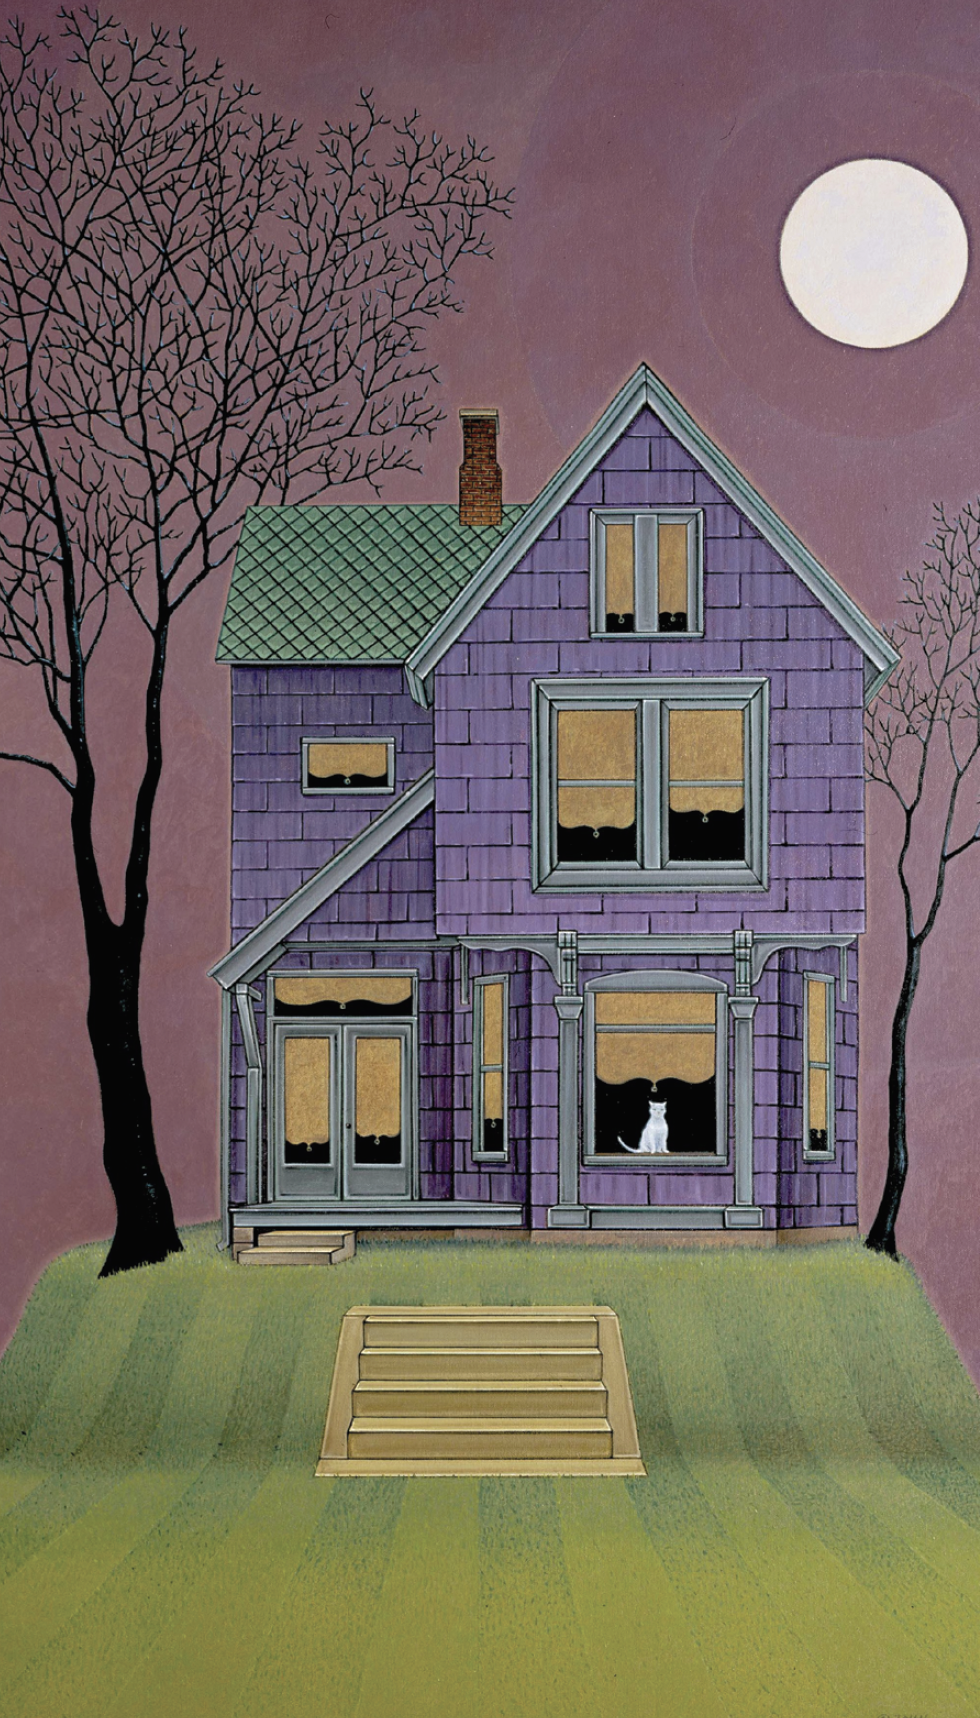 "John Hrehov, House Cat, 2007, oil on canvas mounted on panel, 40 x 27 1/2""."